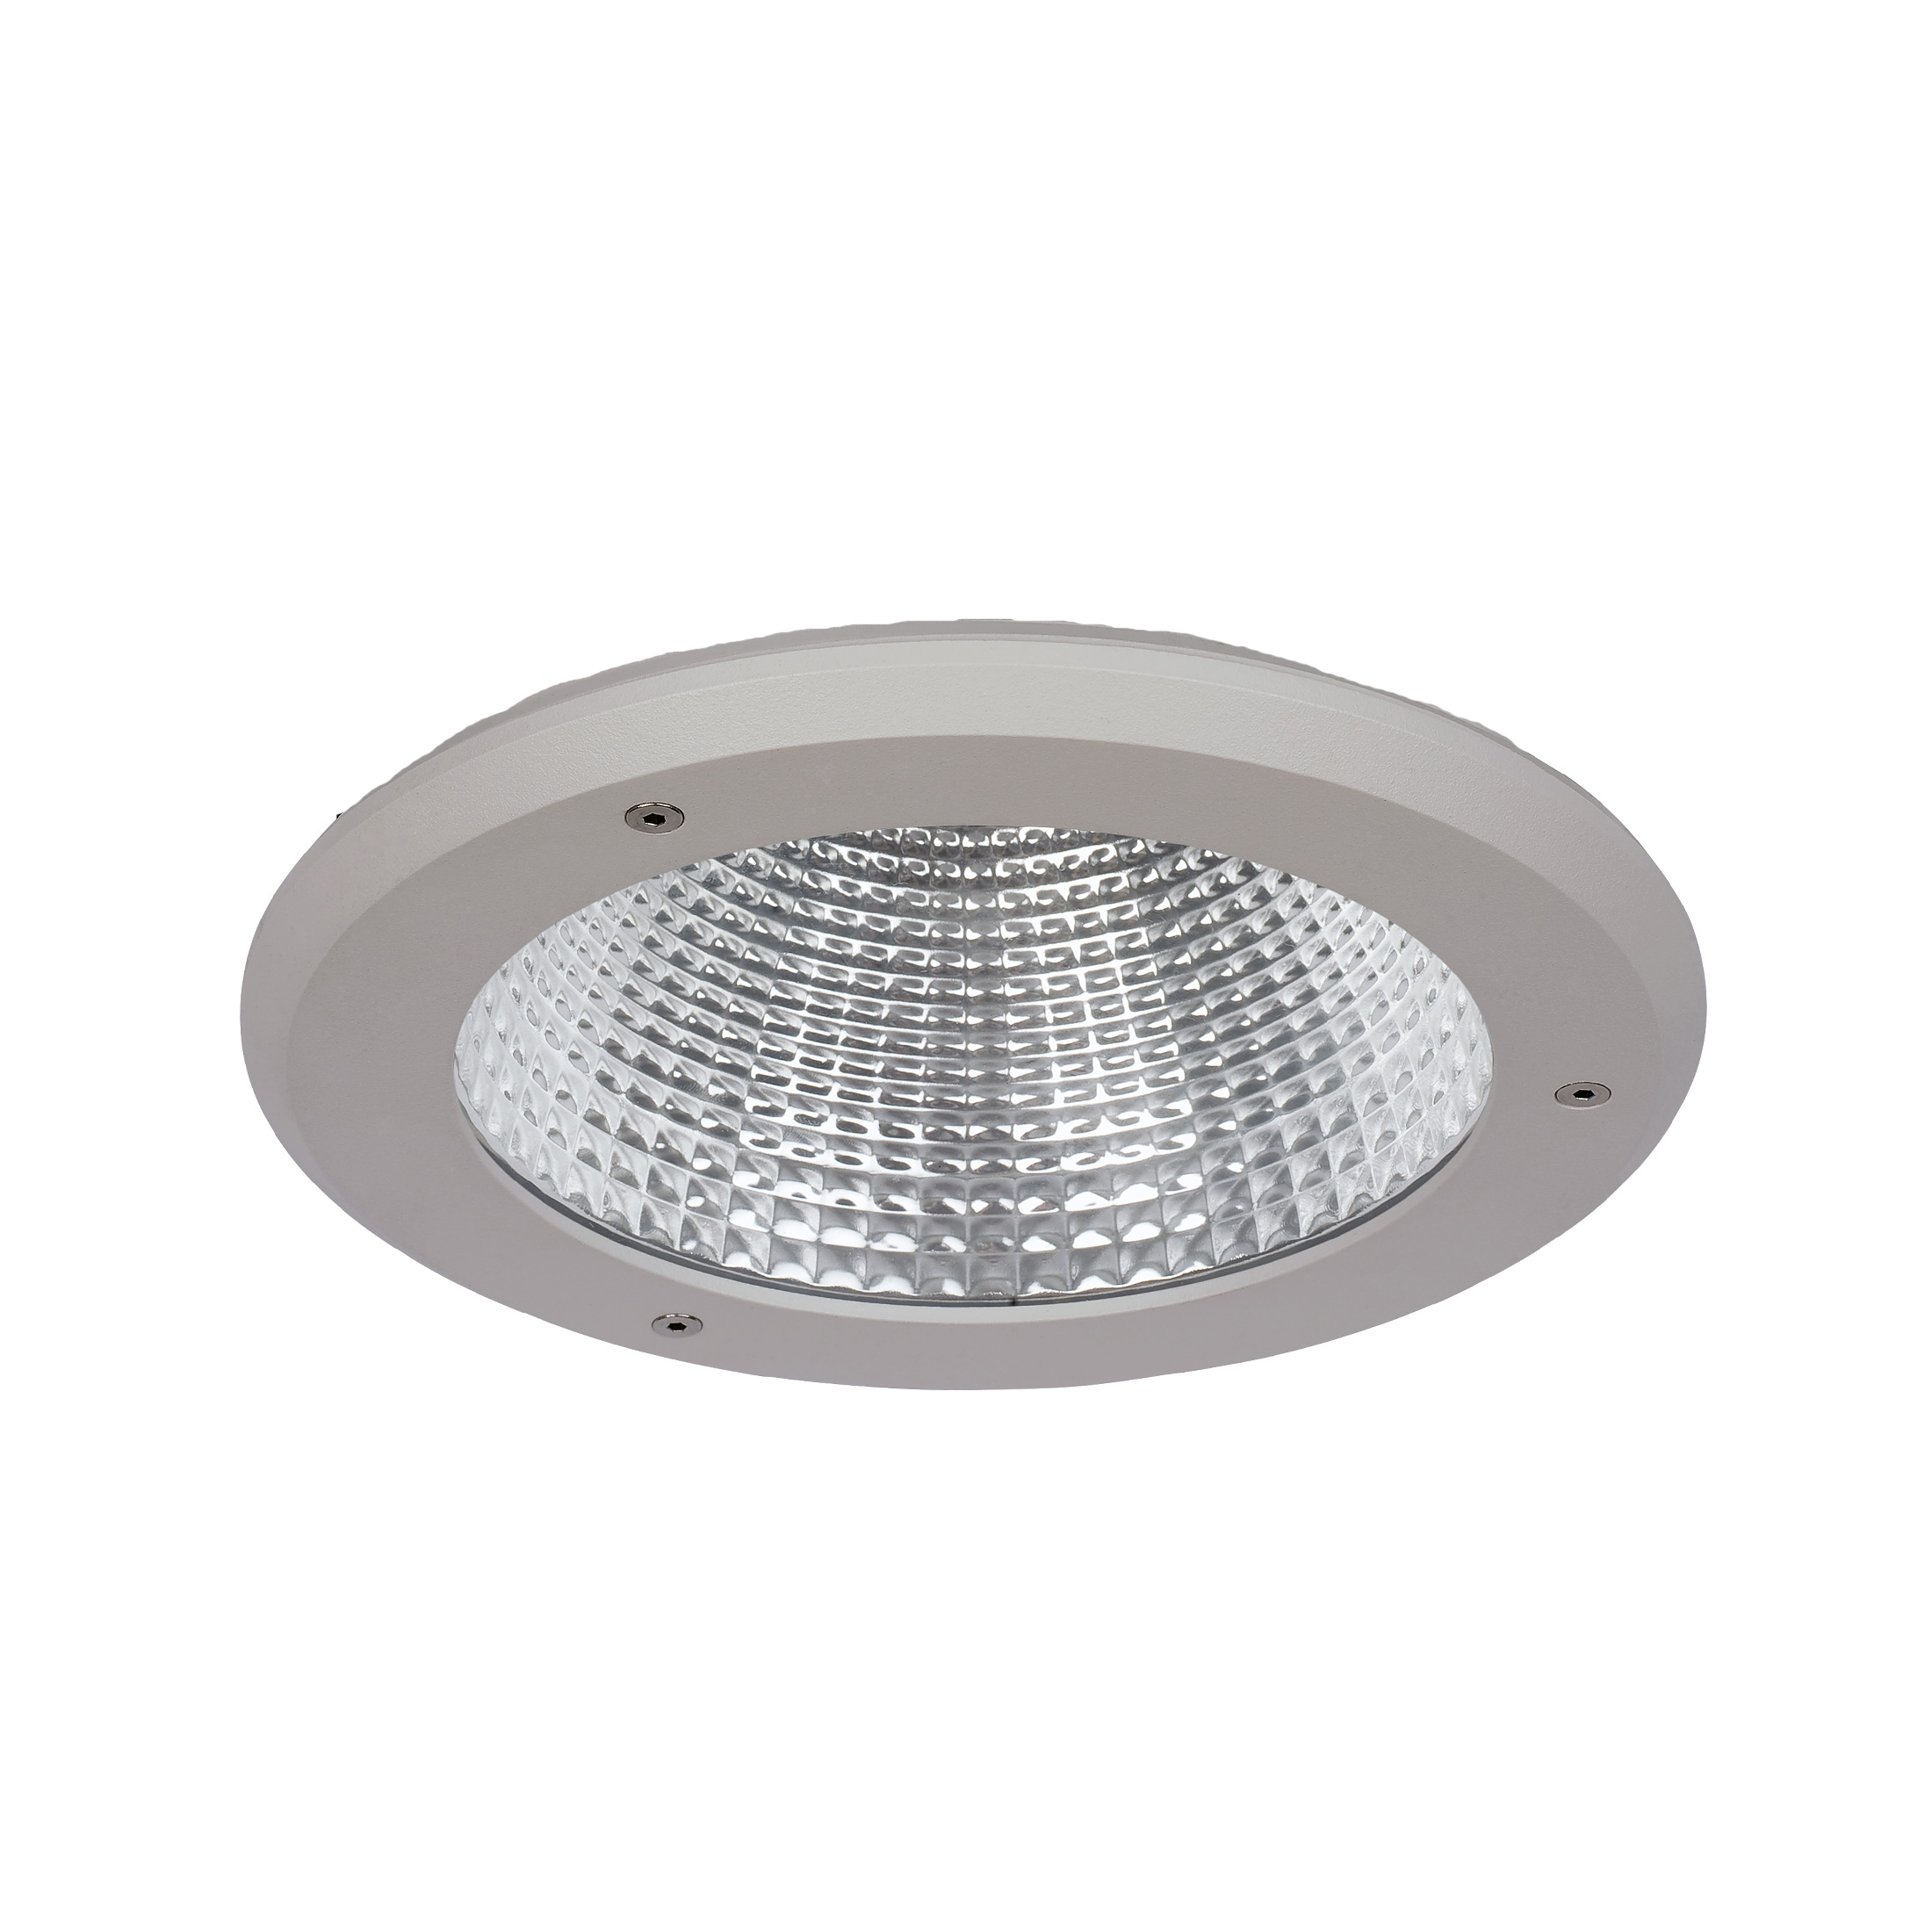 Ip67 Lighting Fixtures